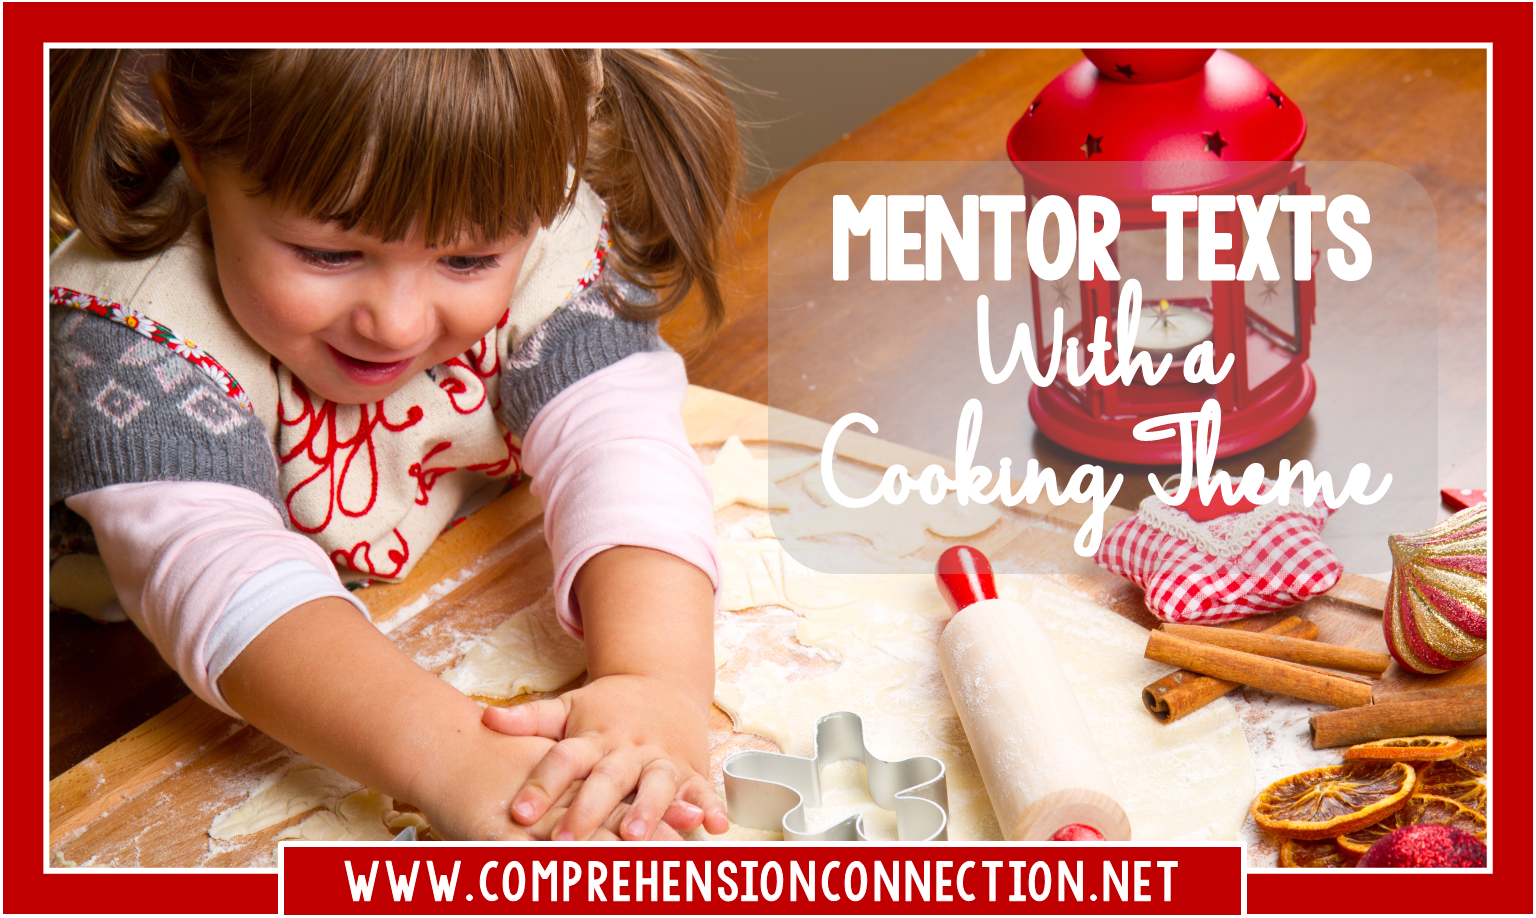 Cooking with kids teaches them so many skills including following directions, measurement, chemistry, and most importantly, reading for a purpose. If you enjoy cooking with kids, you might be curious to know book titles that tie into a cooking theme. Here are my choices and a little blurb about each.